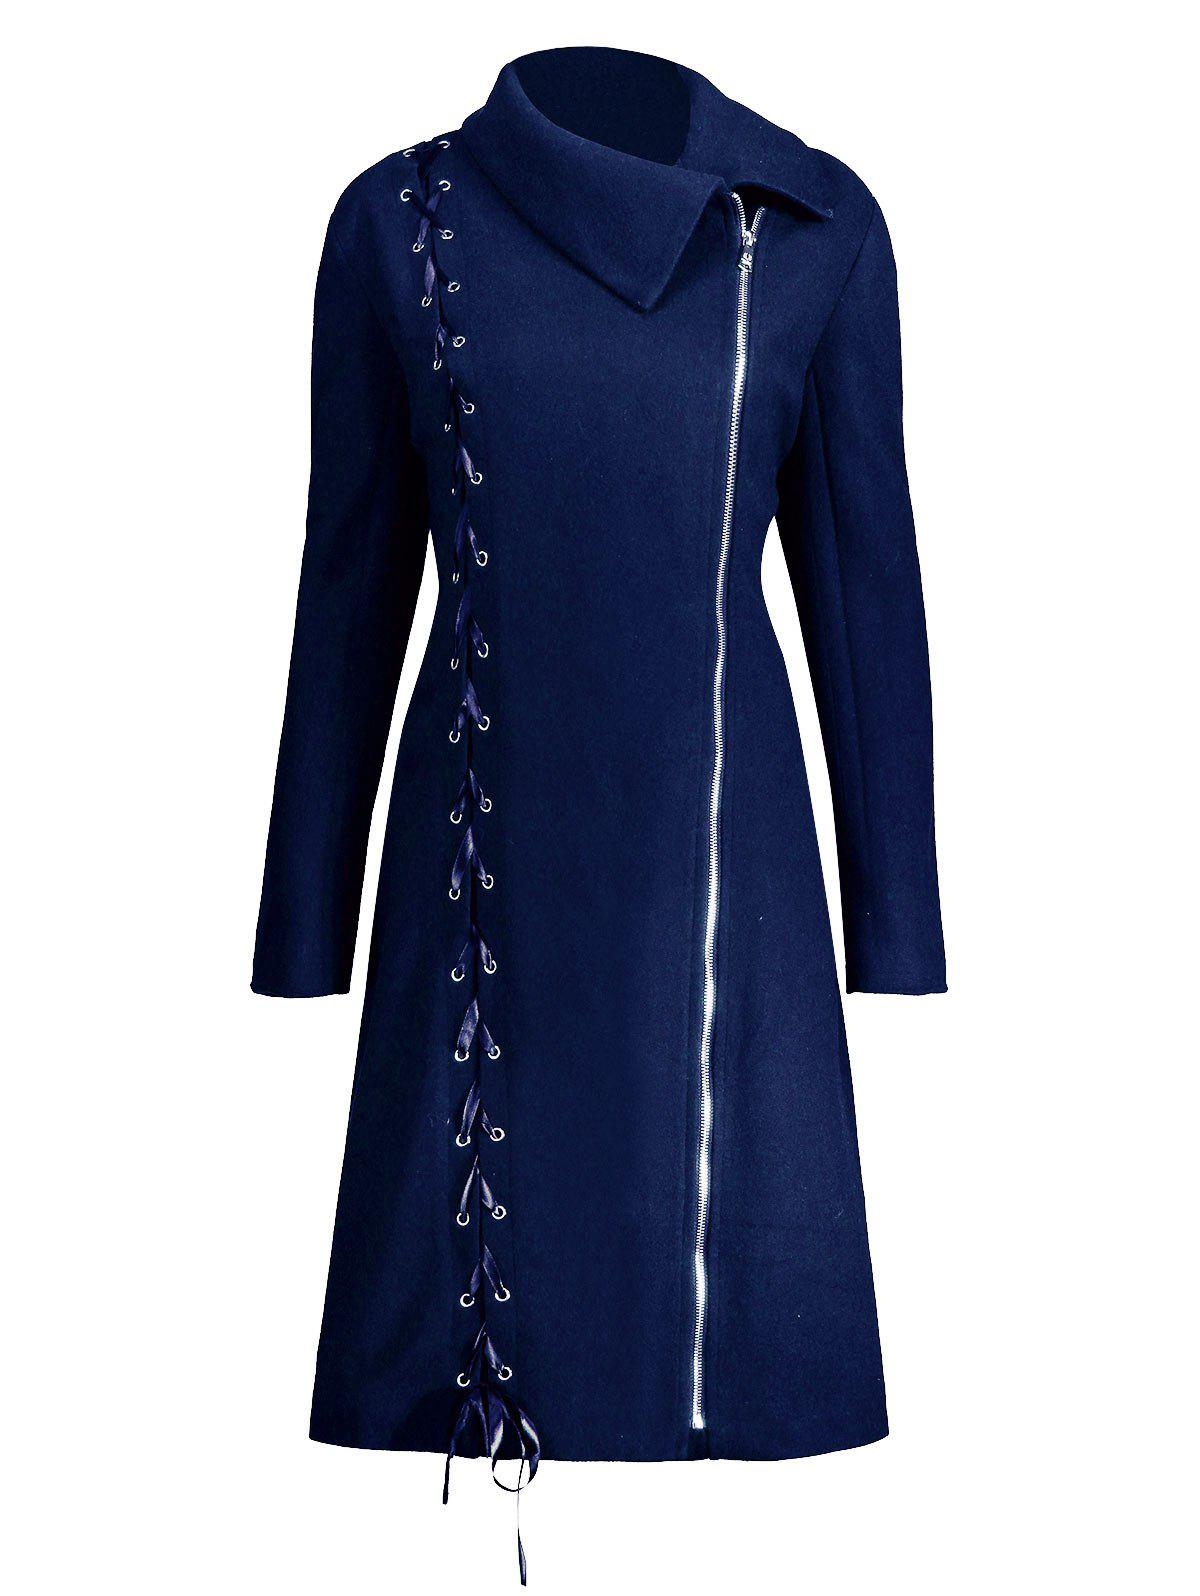 Zip Up Plus Size Lace Up CoatWOMEN<br><br>Size: 2XL; Color: BLUE; Clothes Type: Others; Material: Cotton Blends,Polyester,Spandex; Type: Slim; Shirt Length: Long; Sleeve Length: Full; Collar: Lapel; Pattern Type: Solid; Style: Fashion; Season: Fall,Winter; Weight: 1.0900kg; Package Contents: 1 x Coat;